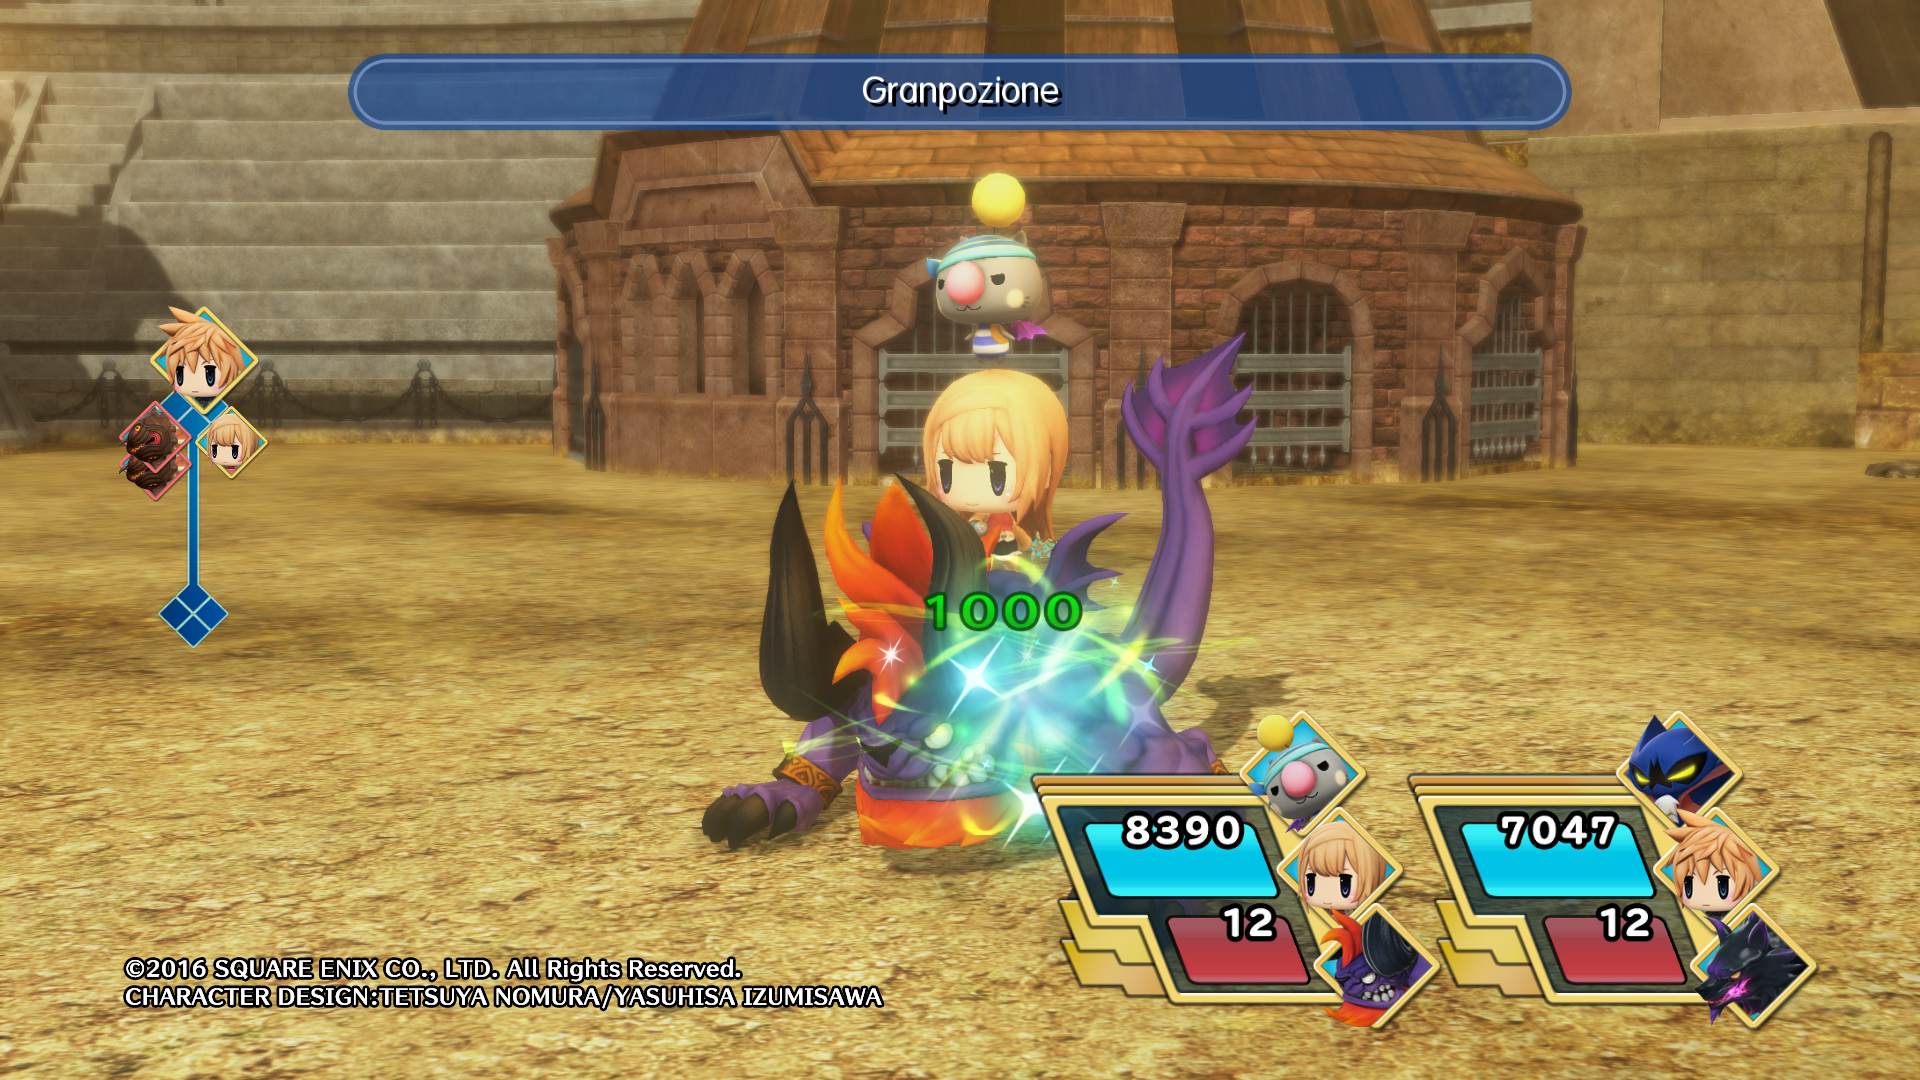 world-of-final-fantasy-guida-chocolatte-screenshot-04